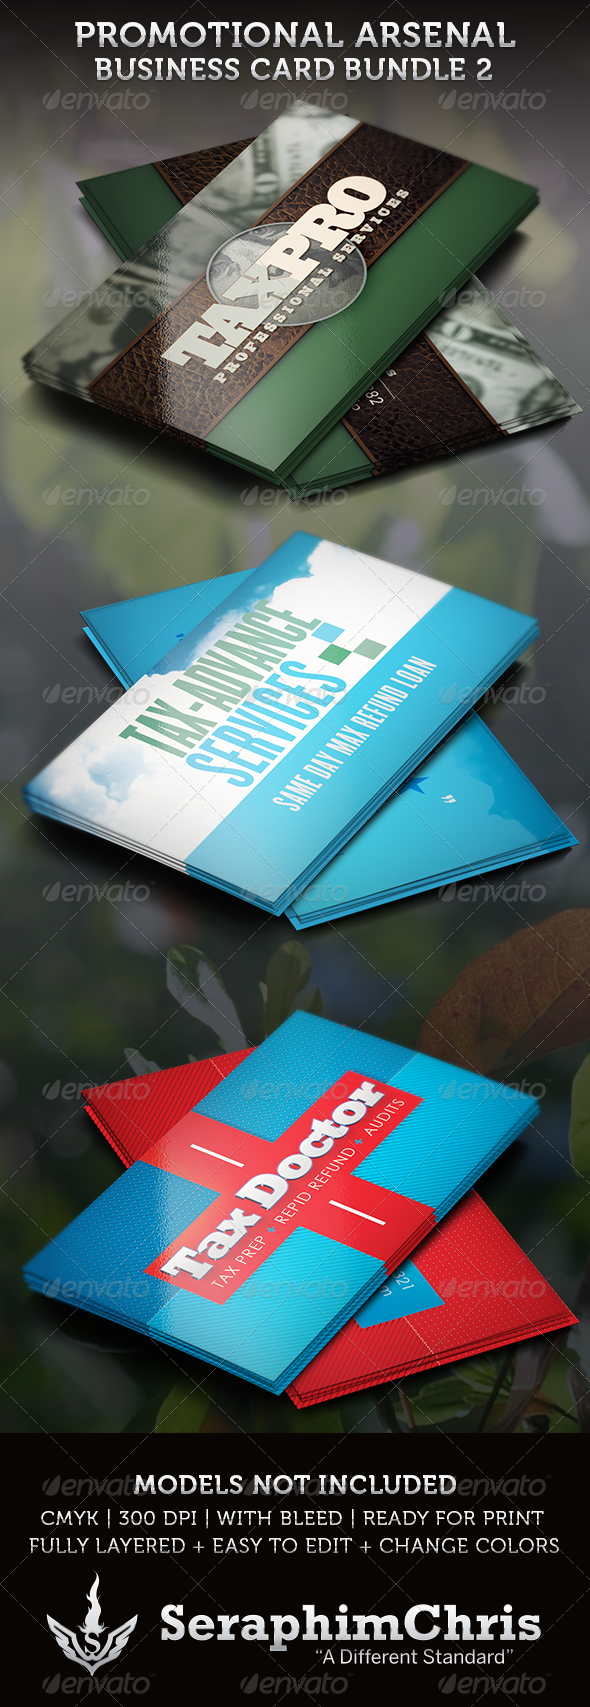 GraphicRiver Promotional Arsenal Business Card Bundle 2 3630599